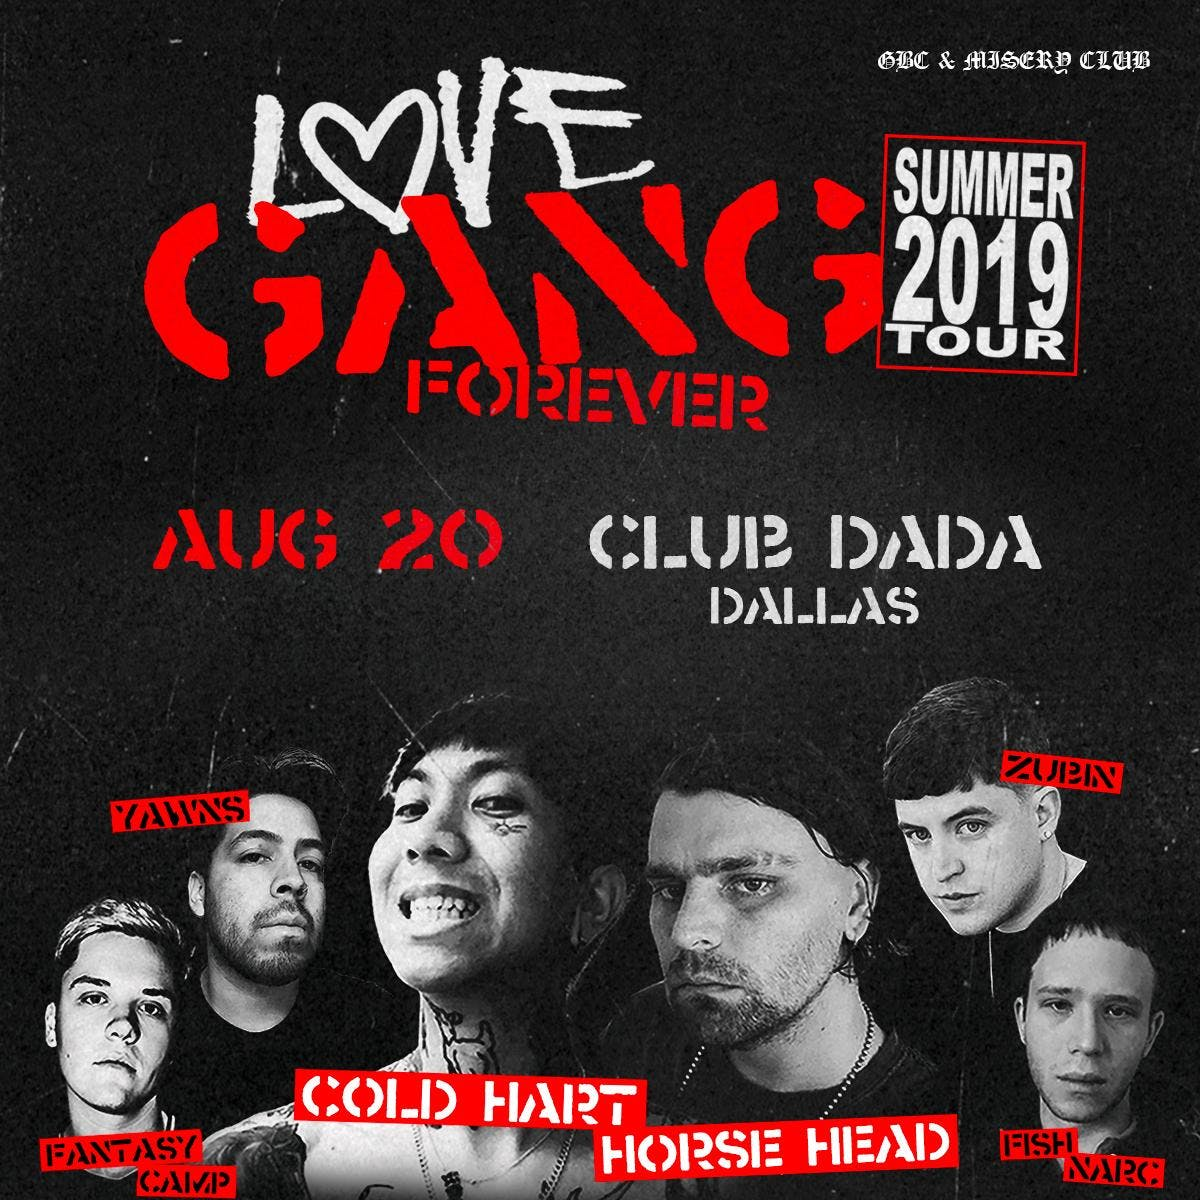 Gothboiclique Presents: Cold Hart, Horse Head, and more